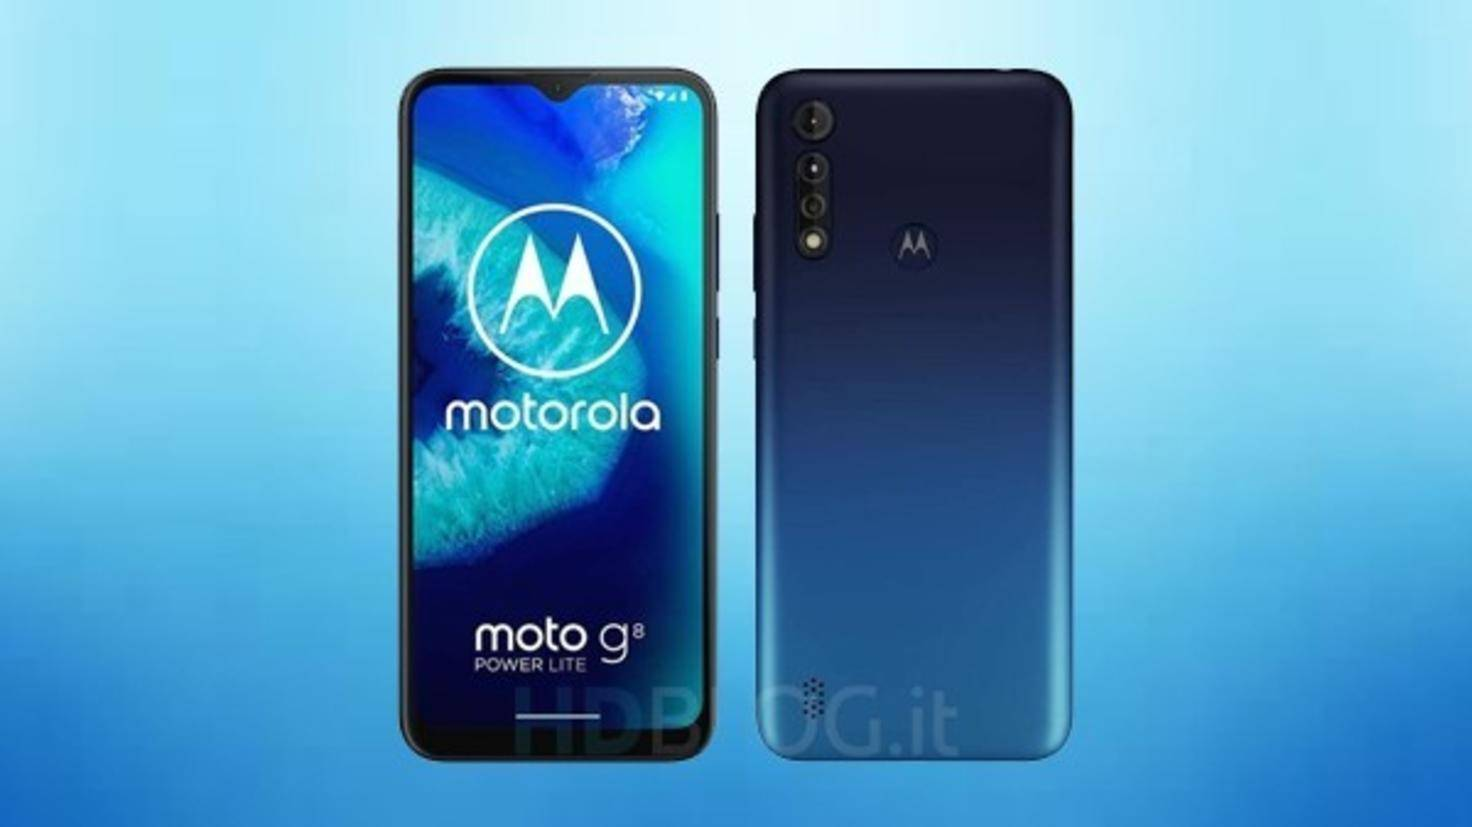 motorola-moto-g8-power-lite-new-renders-surface-online11-1584941311